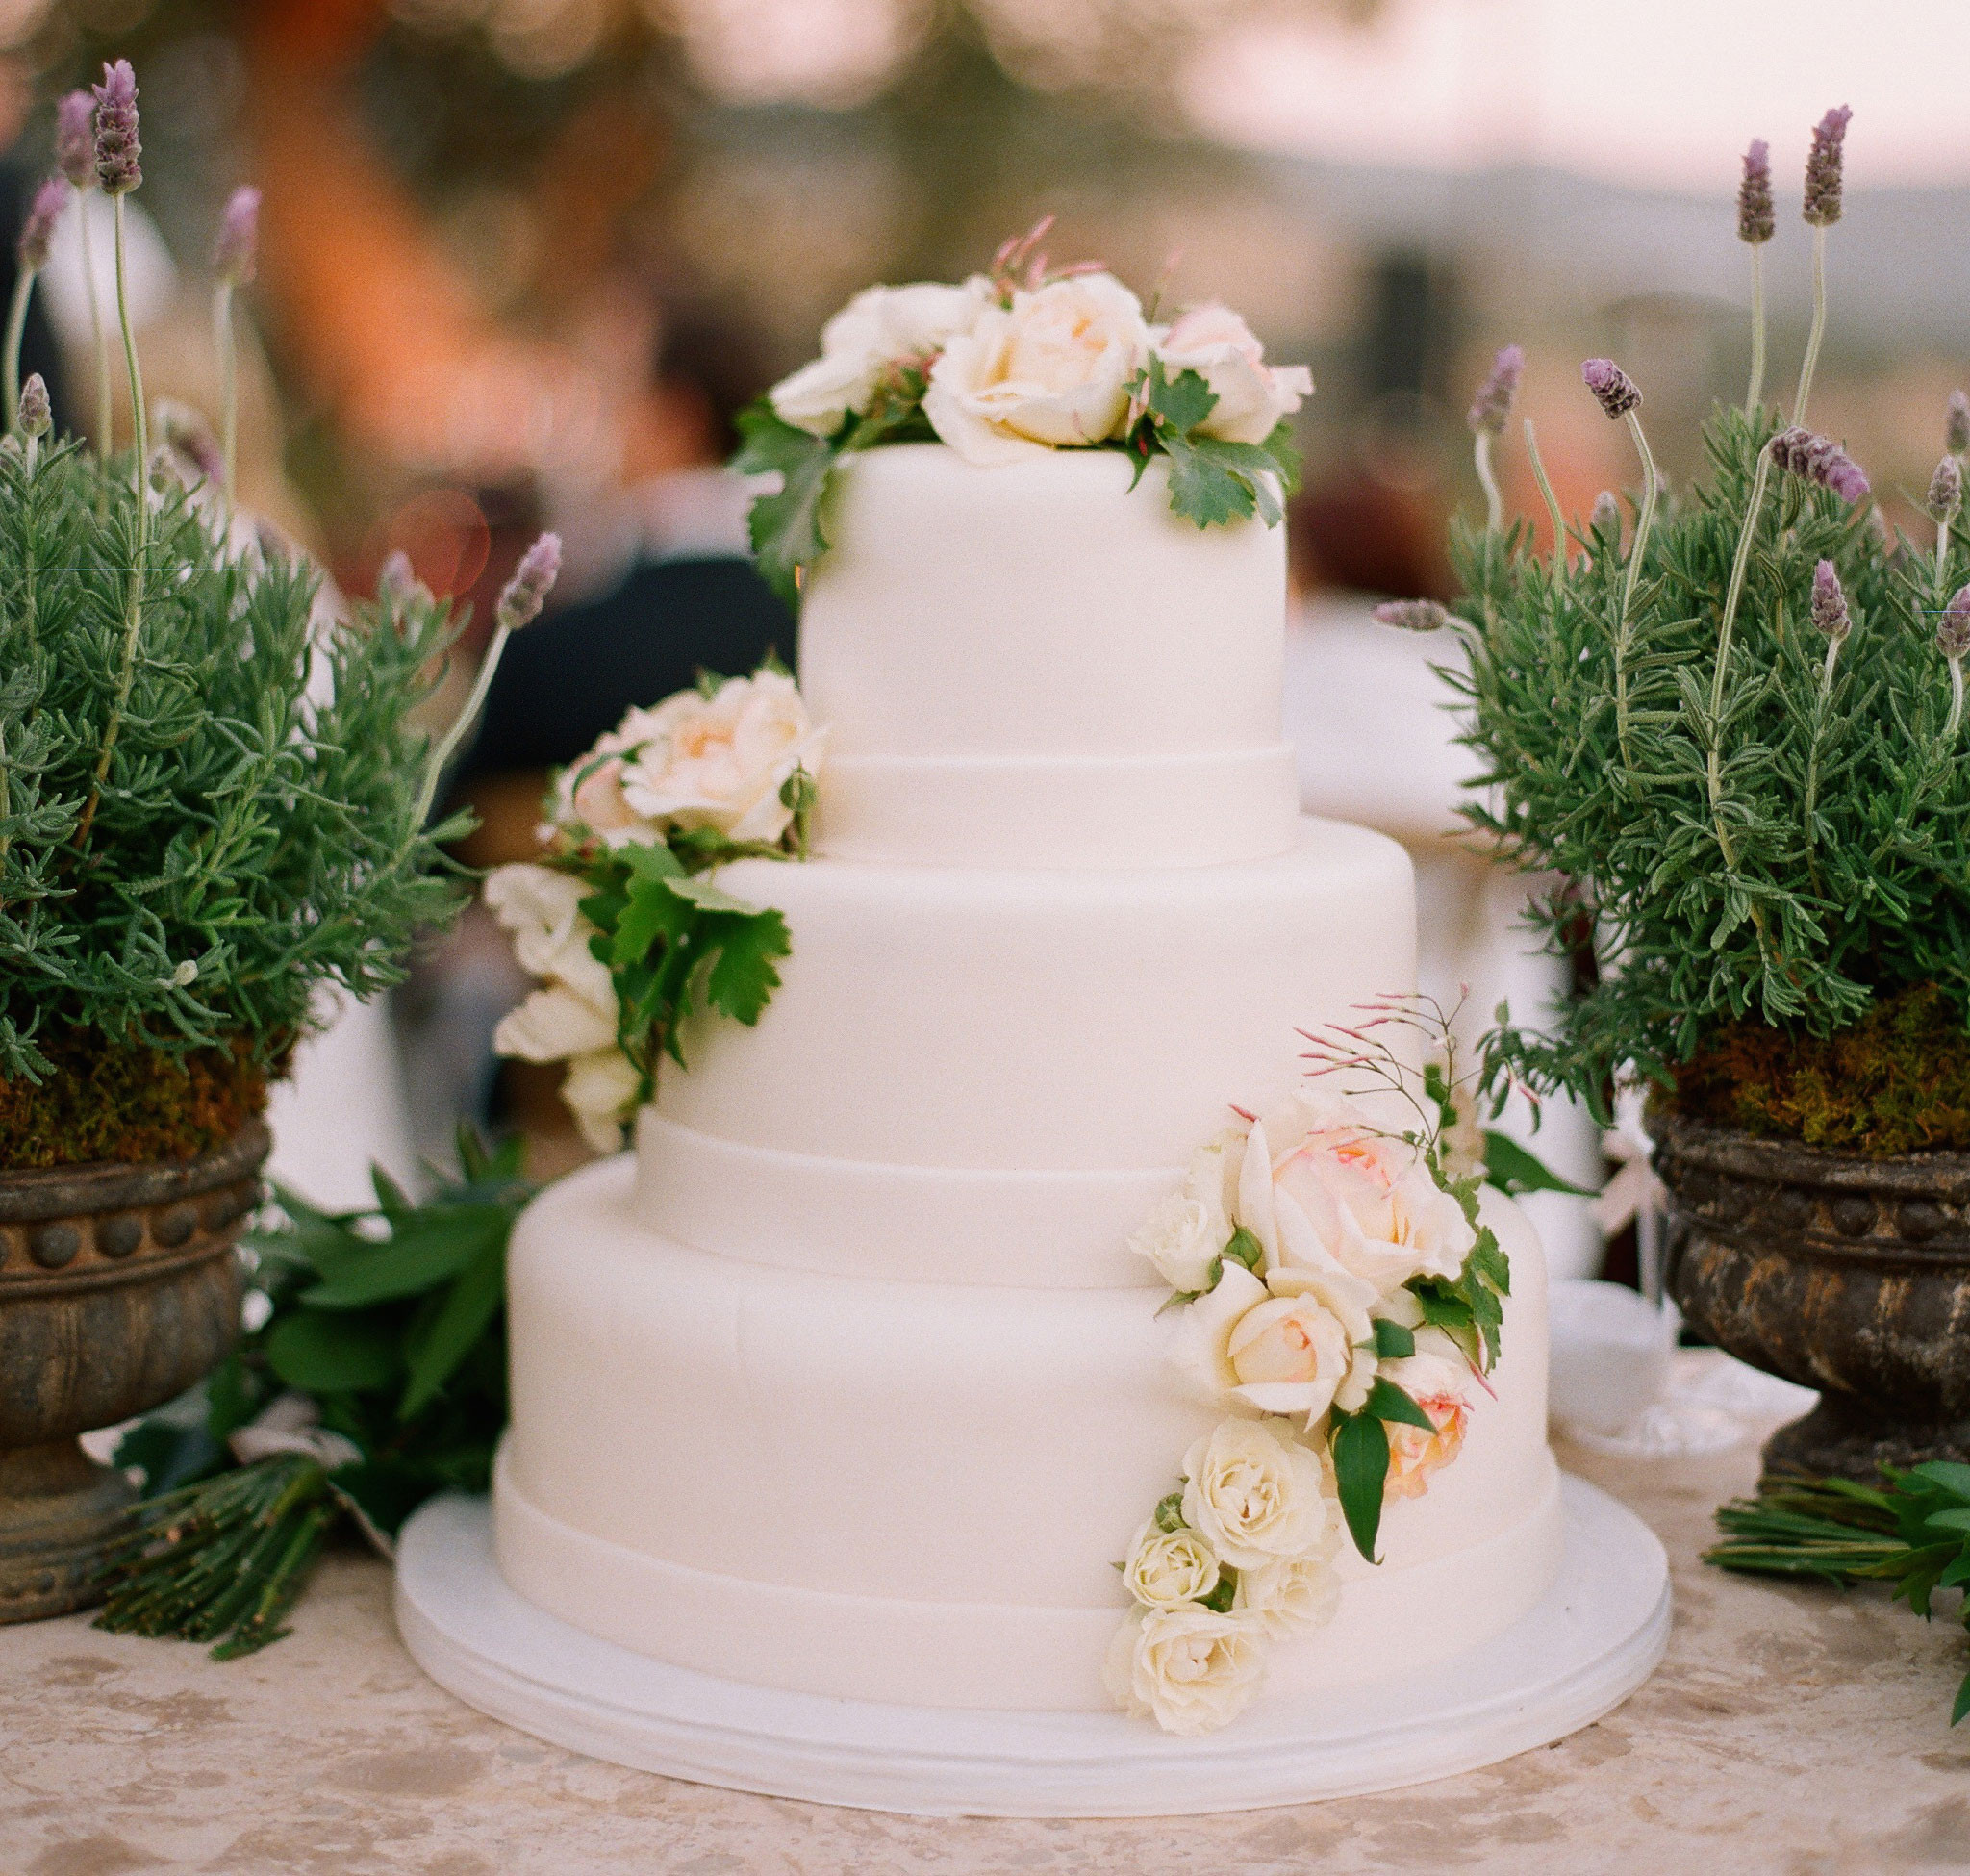 White Wedding Cake With Flowers  Wedding Cakes 20 Ways to Decorate with Fresh Flowers